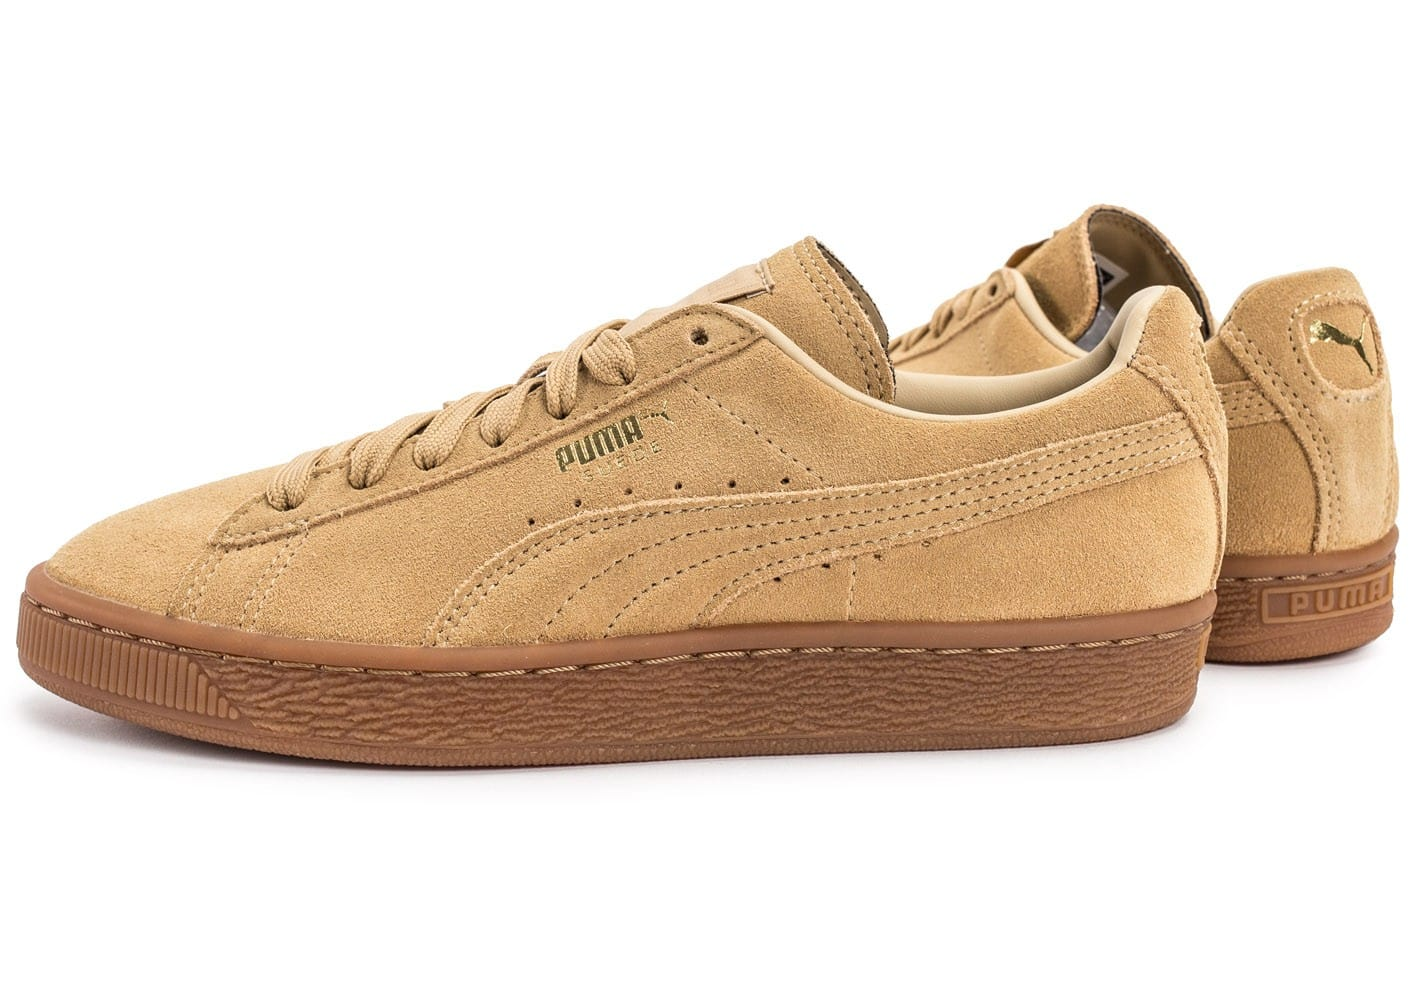 puma suede classic w beige gum chaussures toutes les baskets sold es chausport. Black Bedroom Furniture Sets. Home Design Ideas